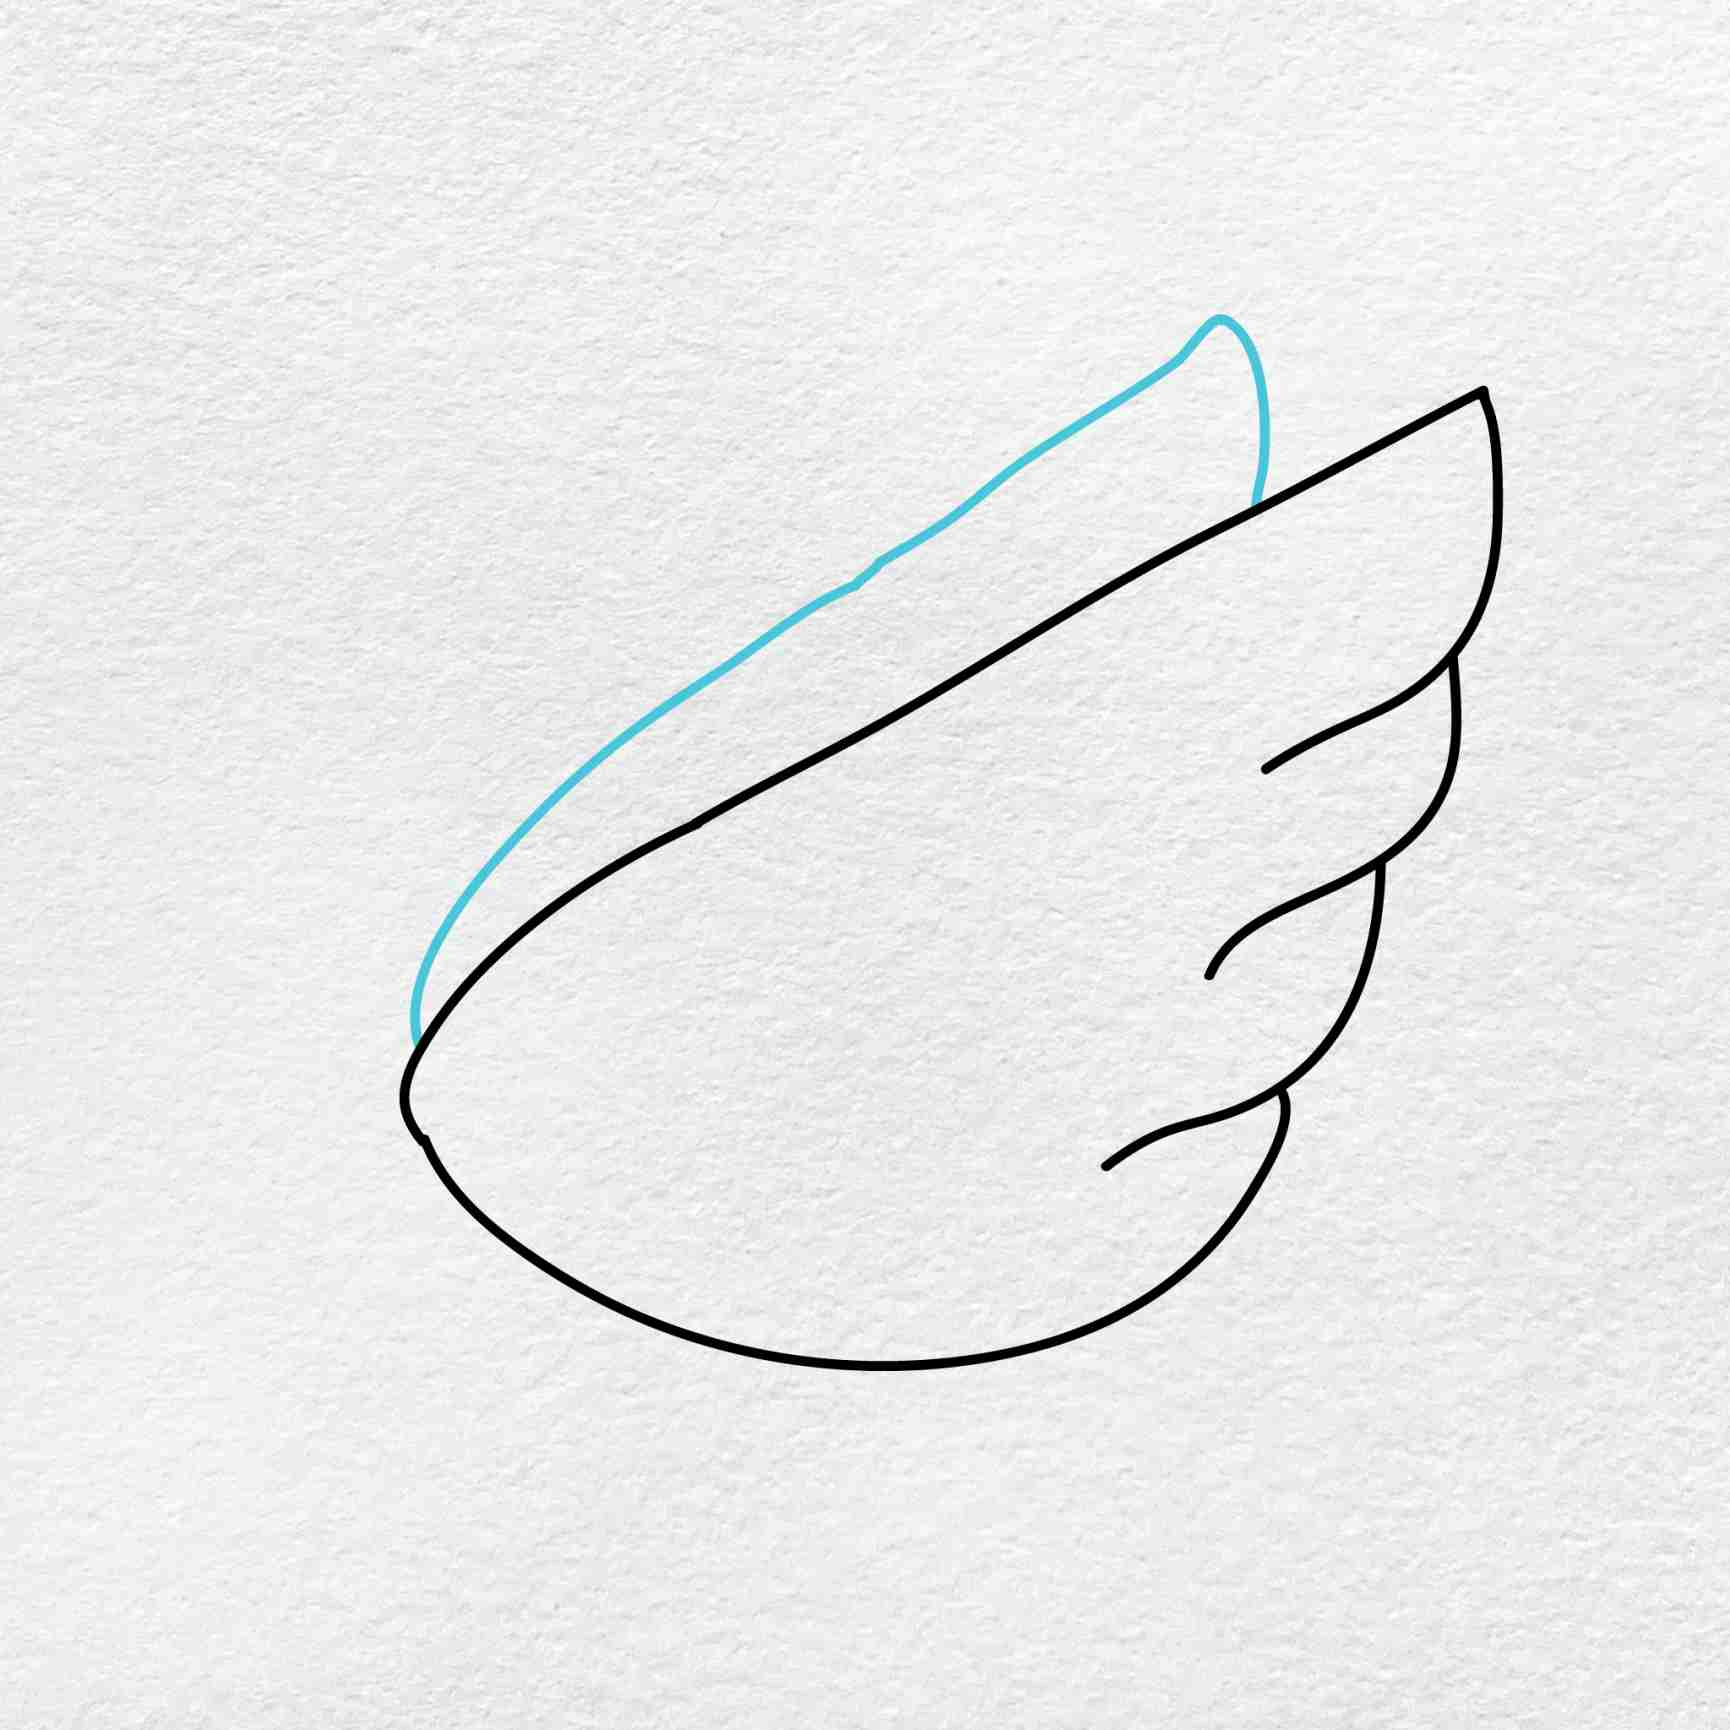 How To Draw A Swan: Step 2